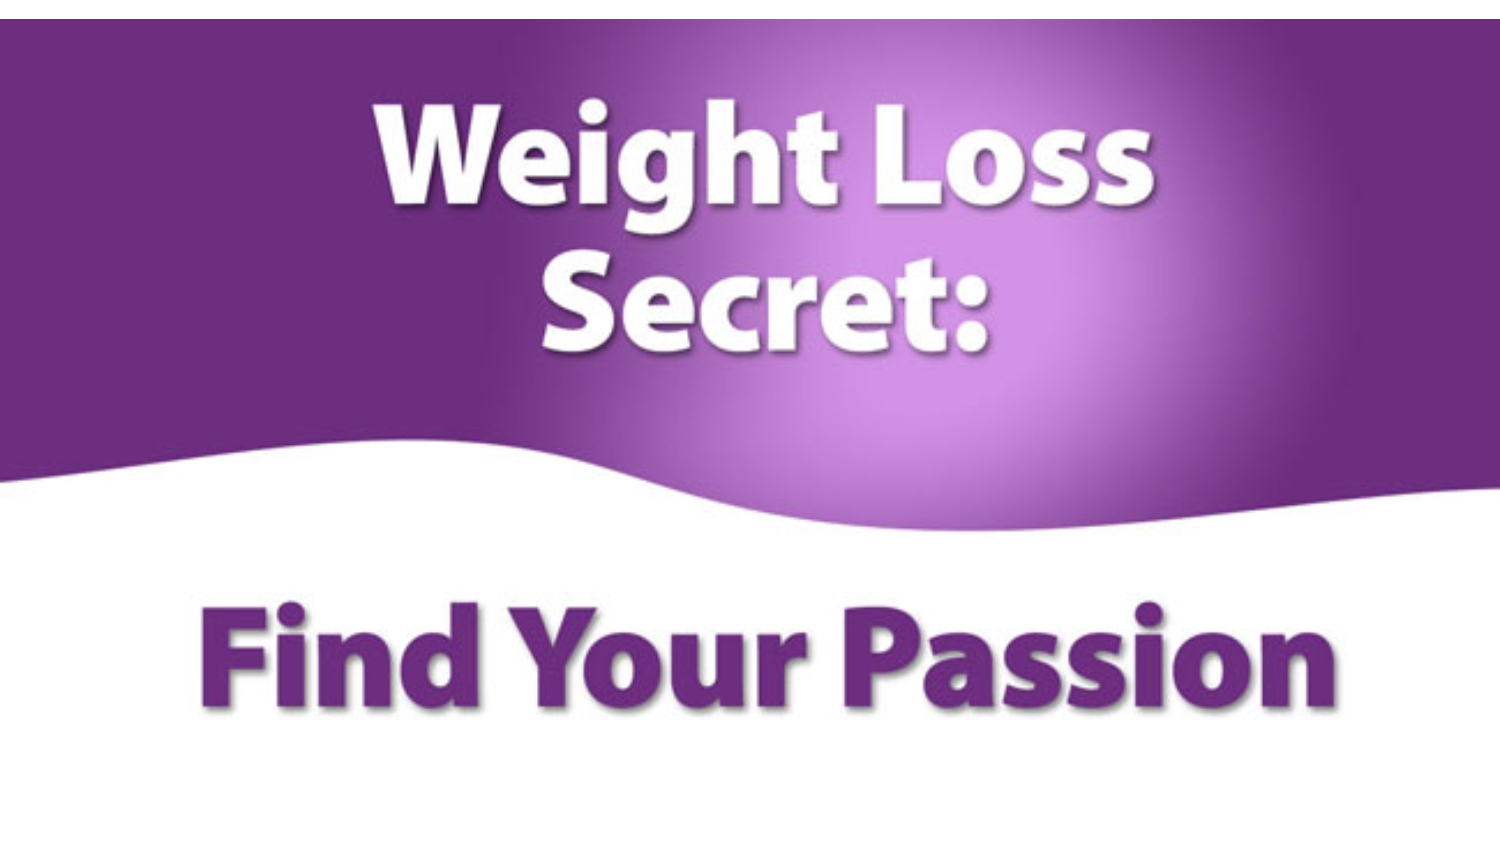 Weight Loss Secret: Finding Your Passion